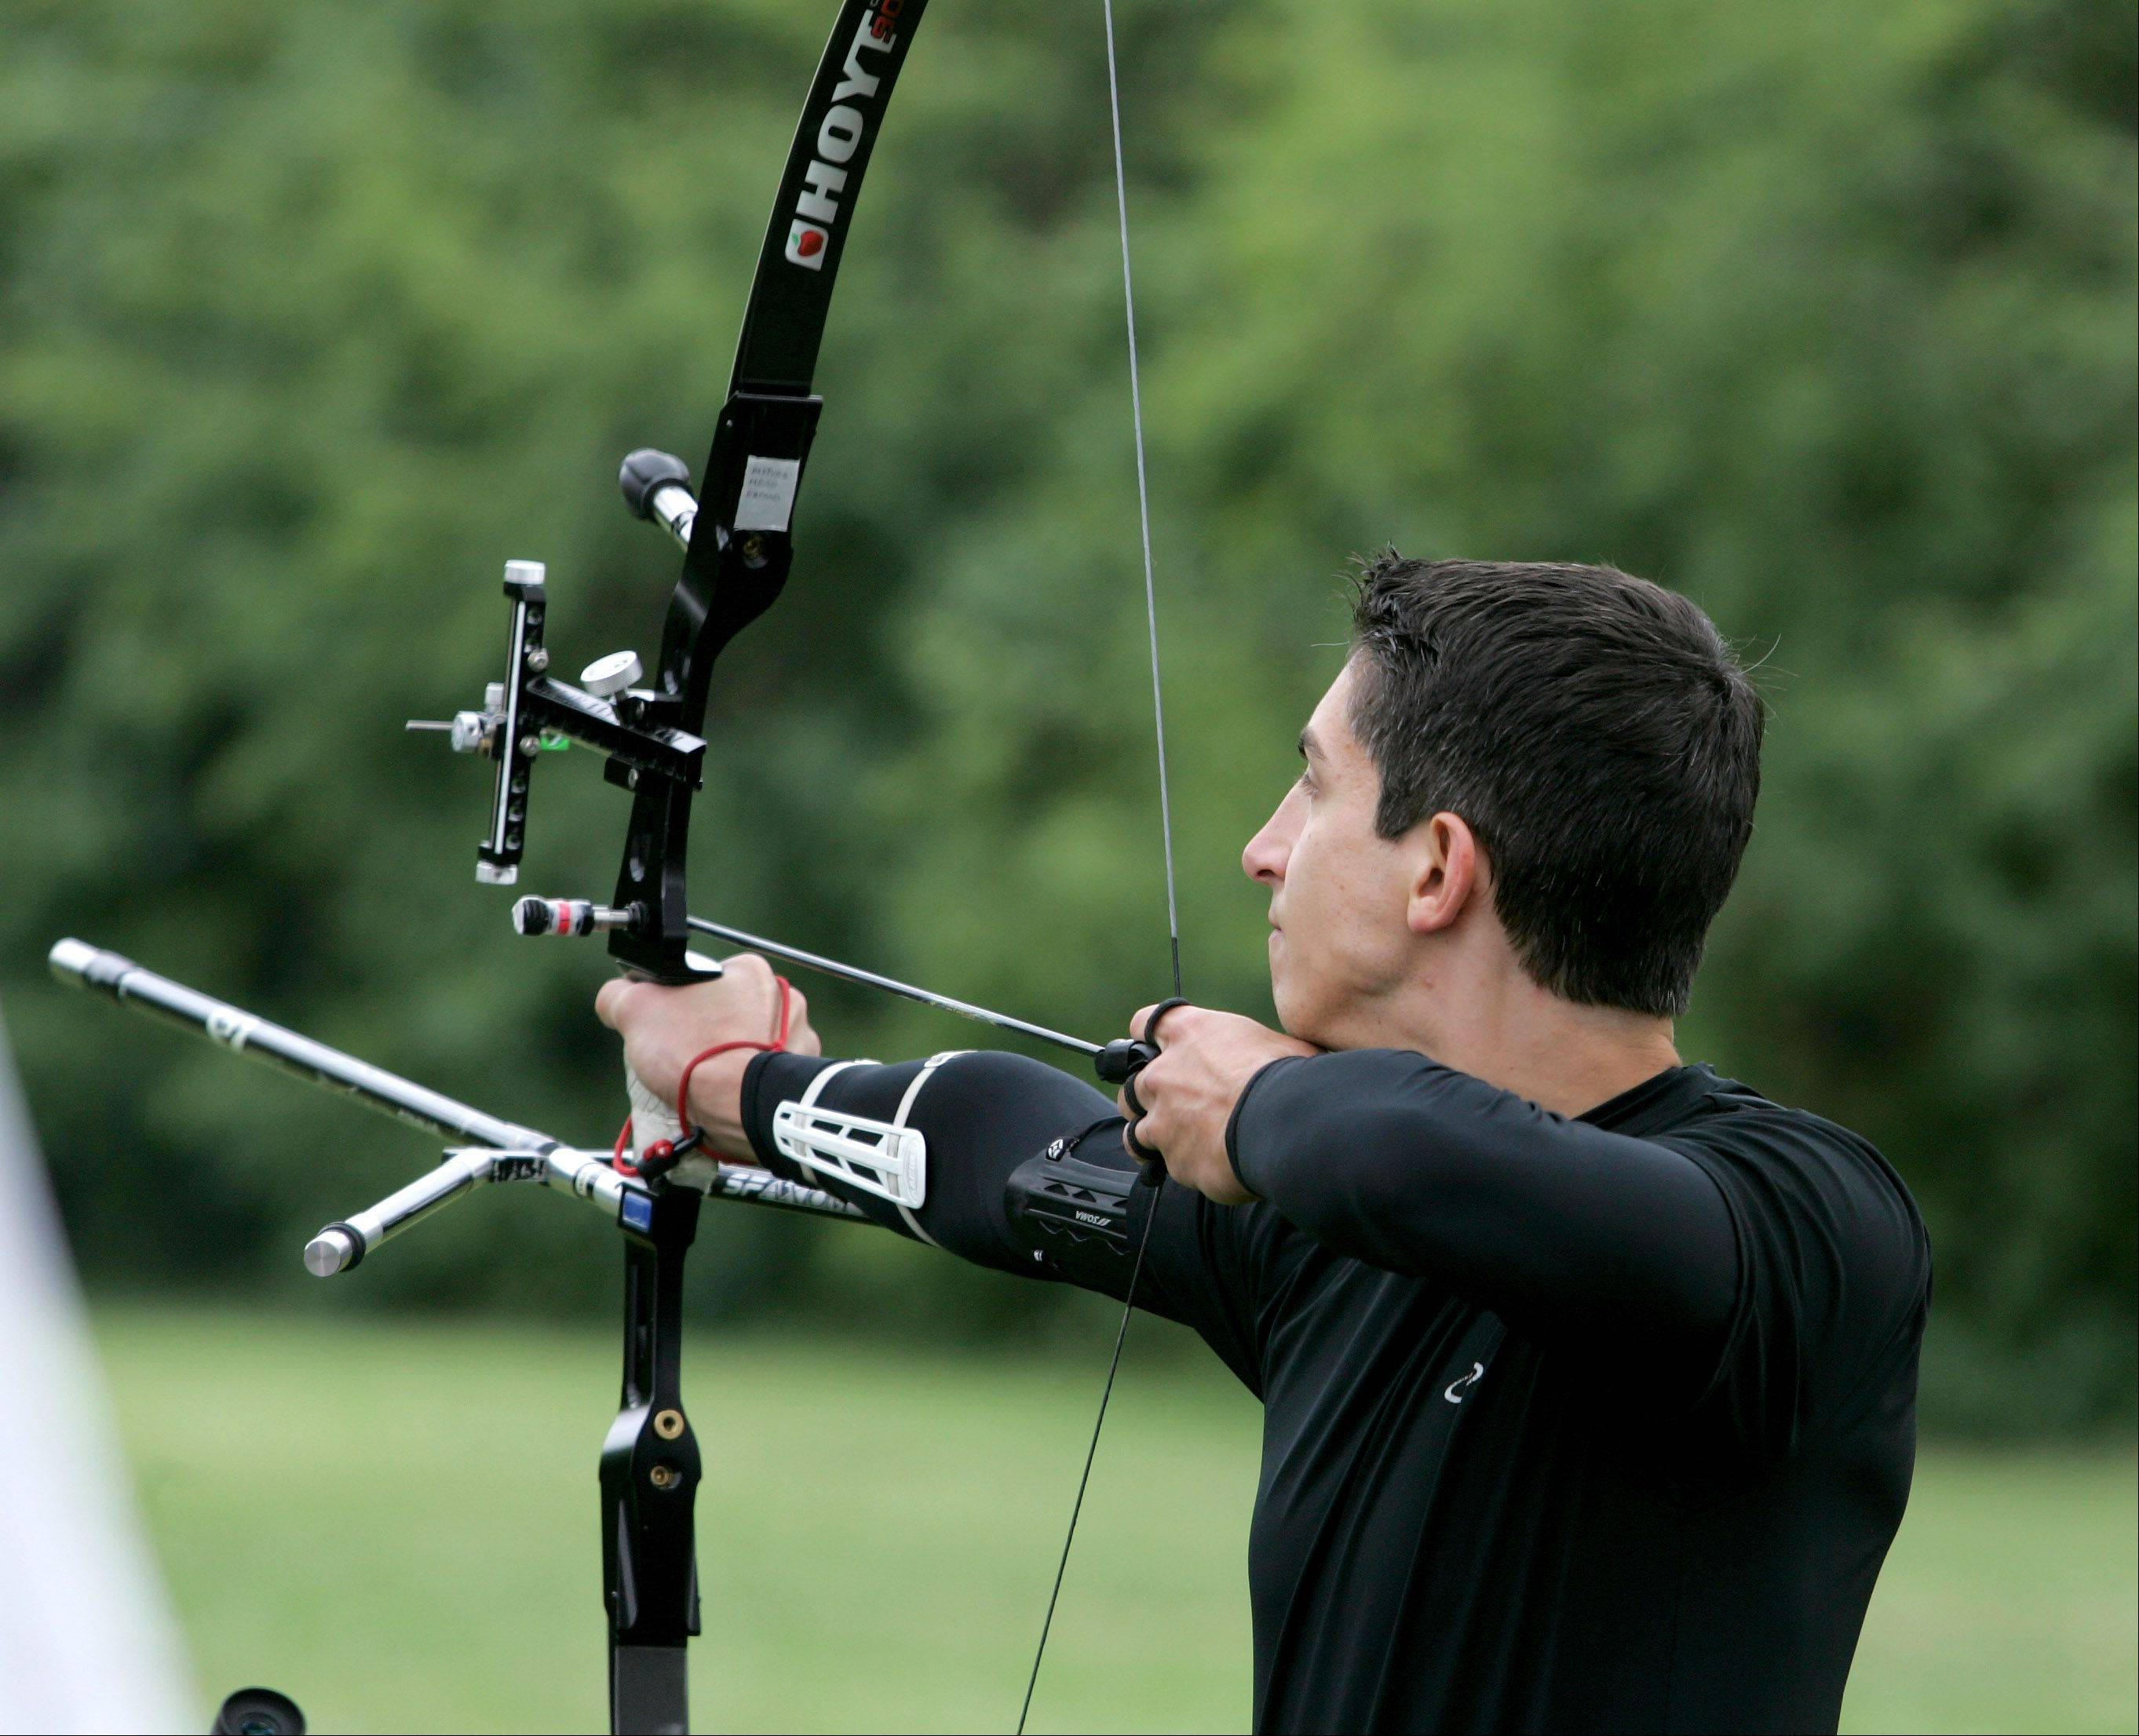 Dennis Timpanaro of Glen Ellyn competes with an Olympic recurve bow in the 900 metric round during the Illinois Target Archery Association's annual Outdoor State Championship at Wheaton Rifle Club in West Chicago on Sunday.